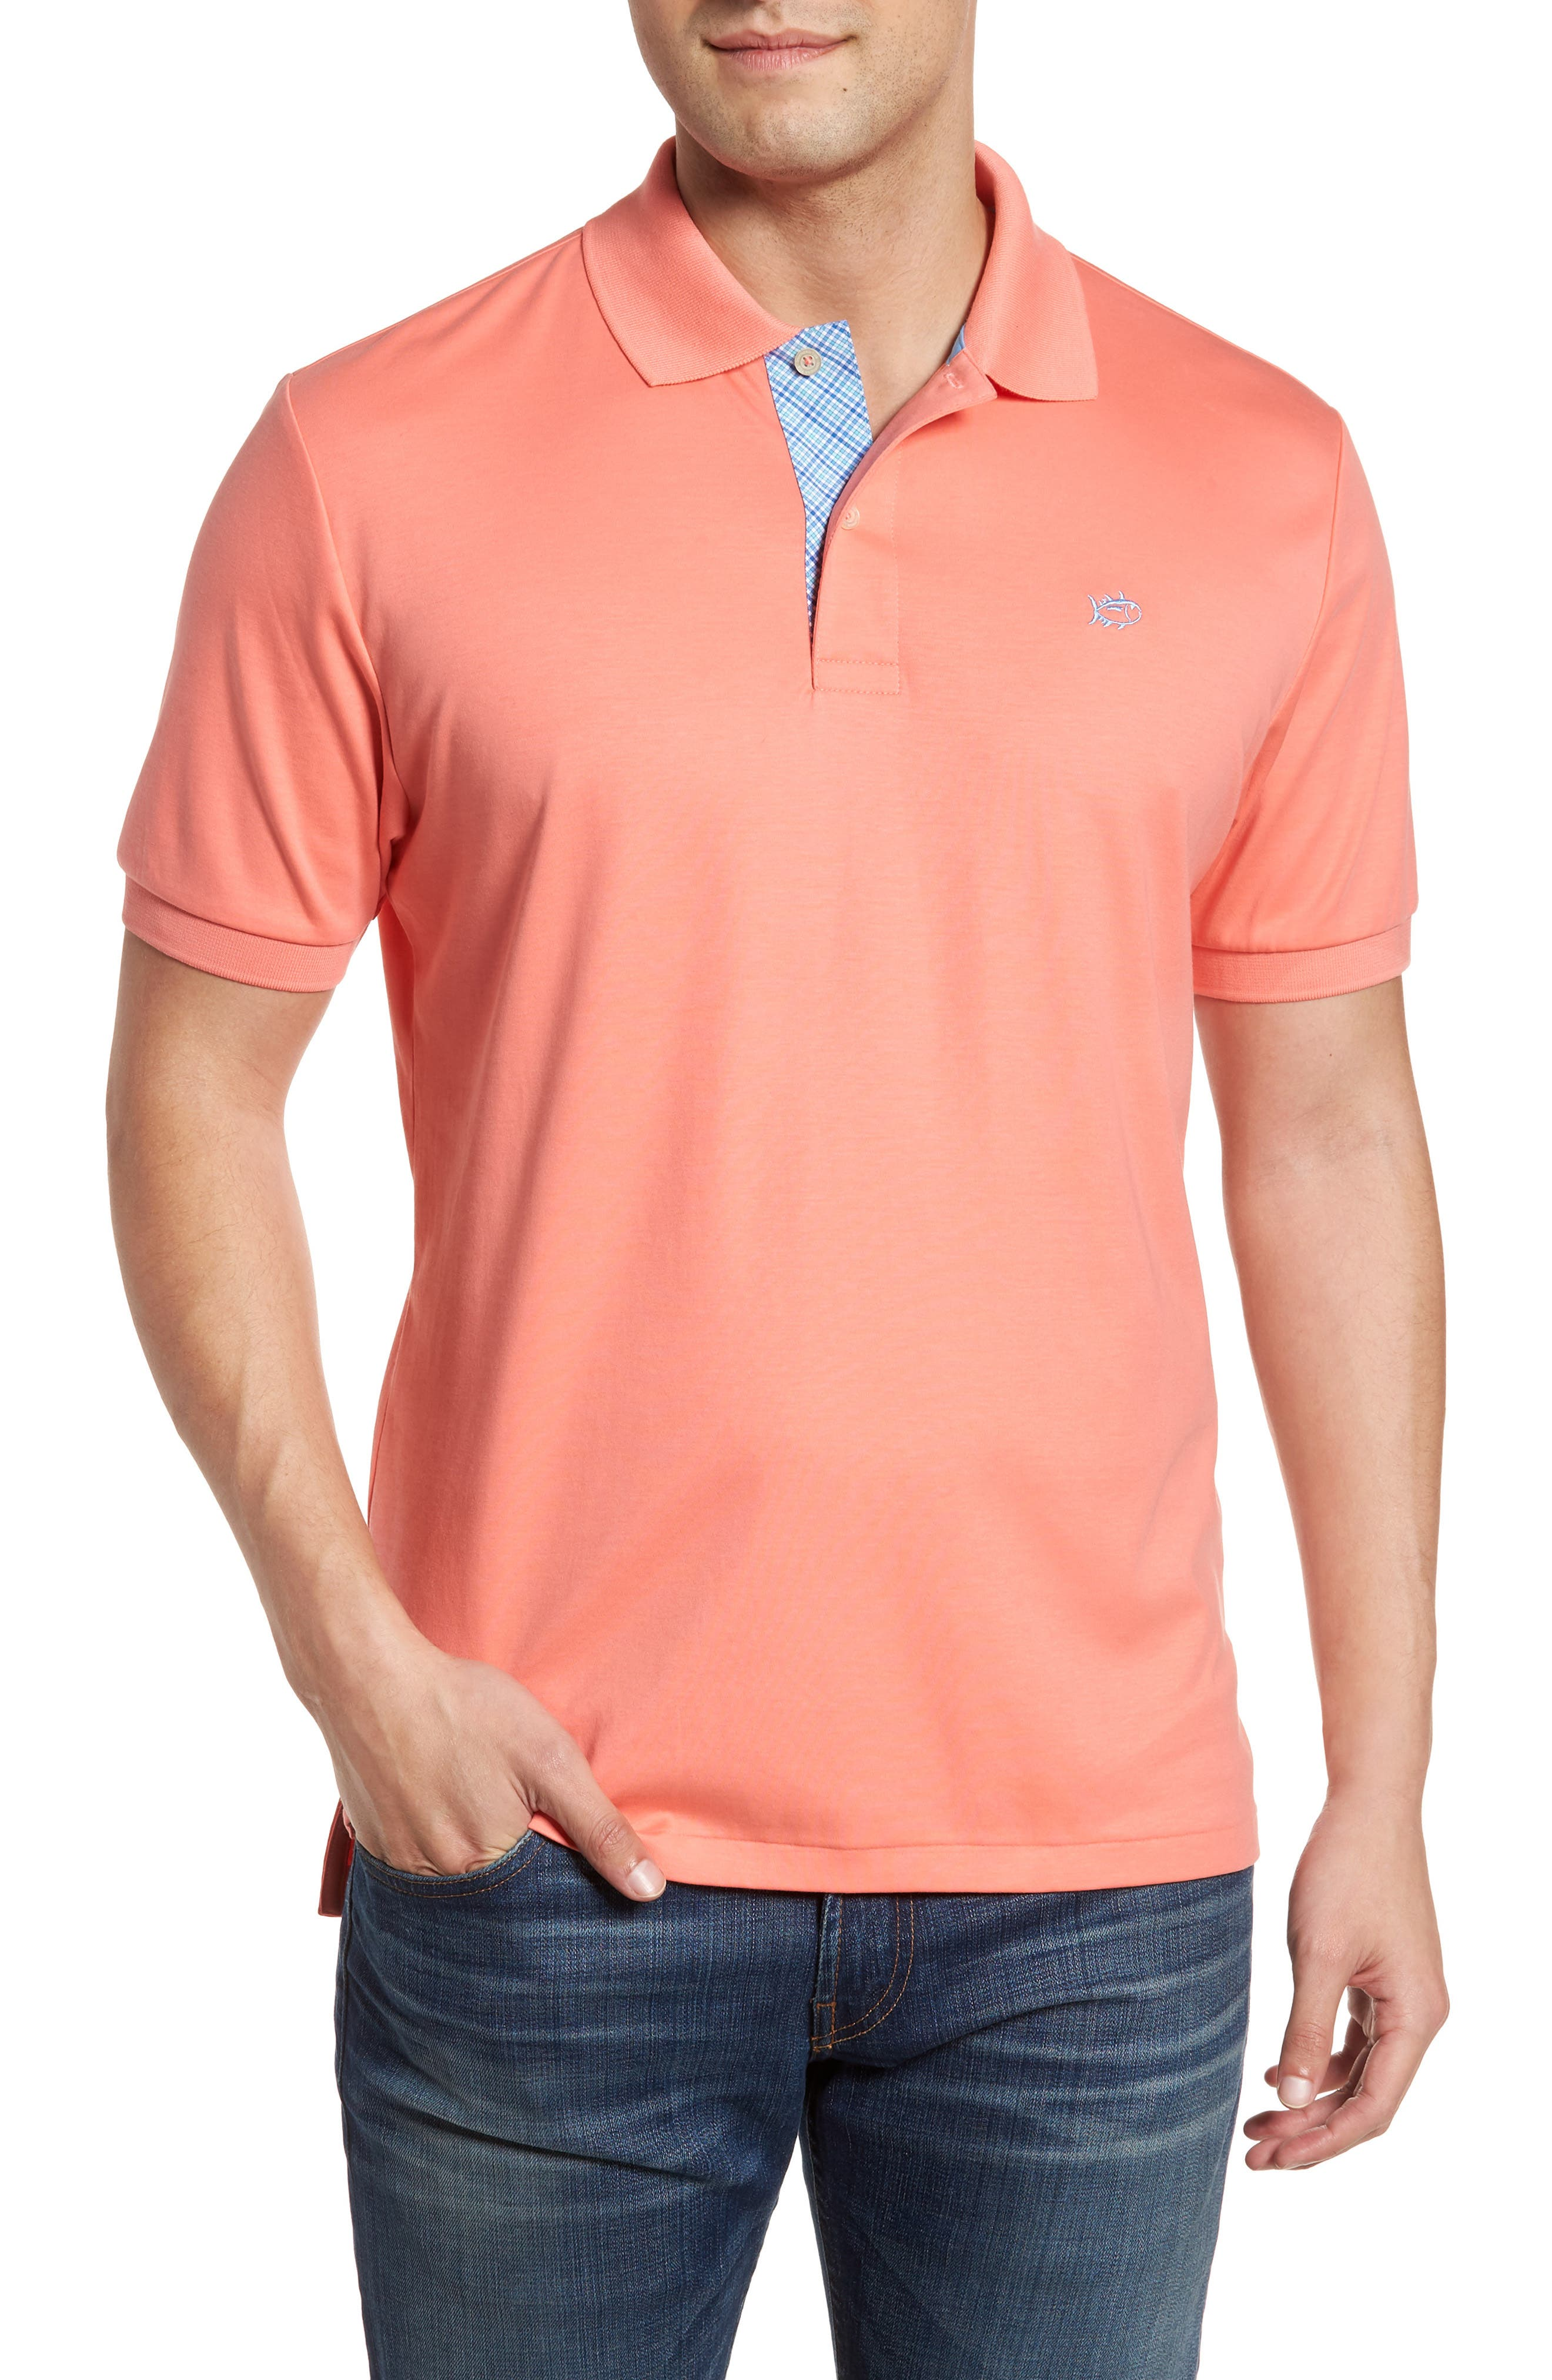 Alternate Image 1 Selected - Southern Tide Sugar Mill Jersey Polo